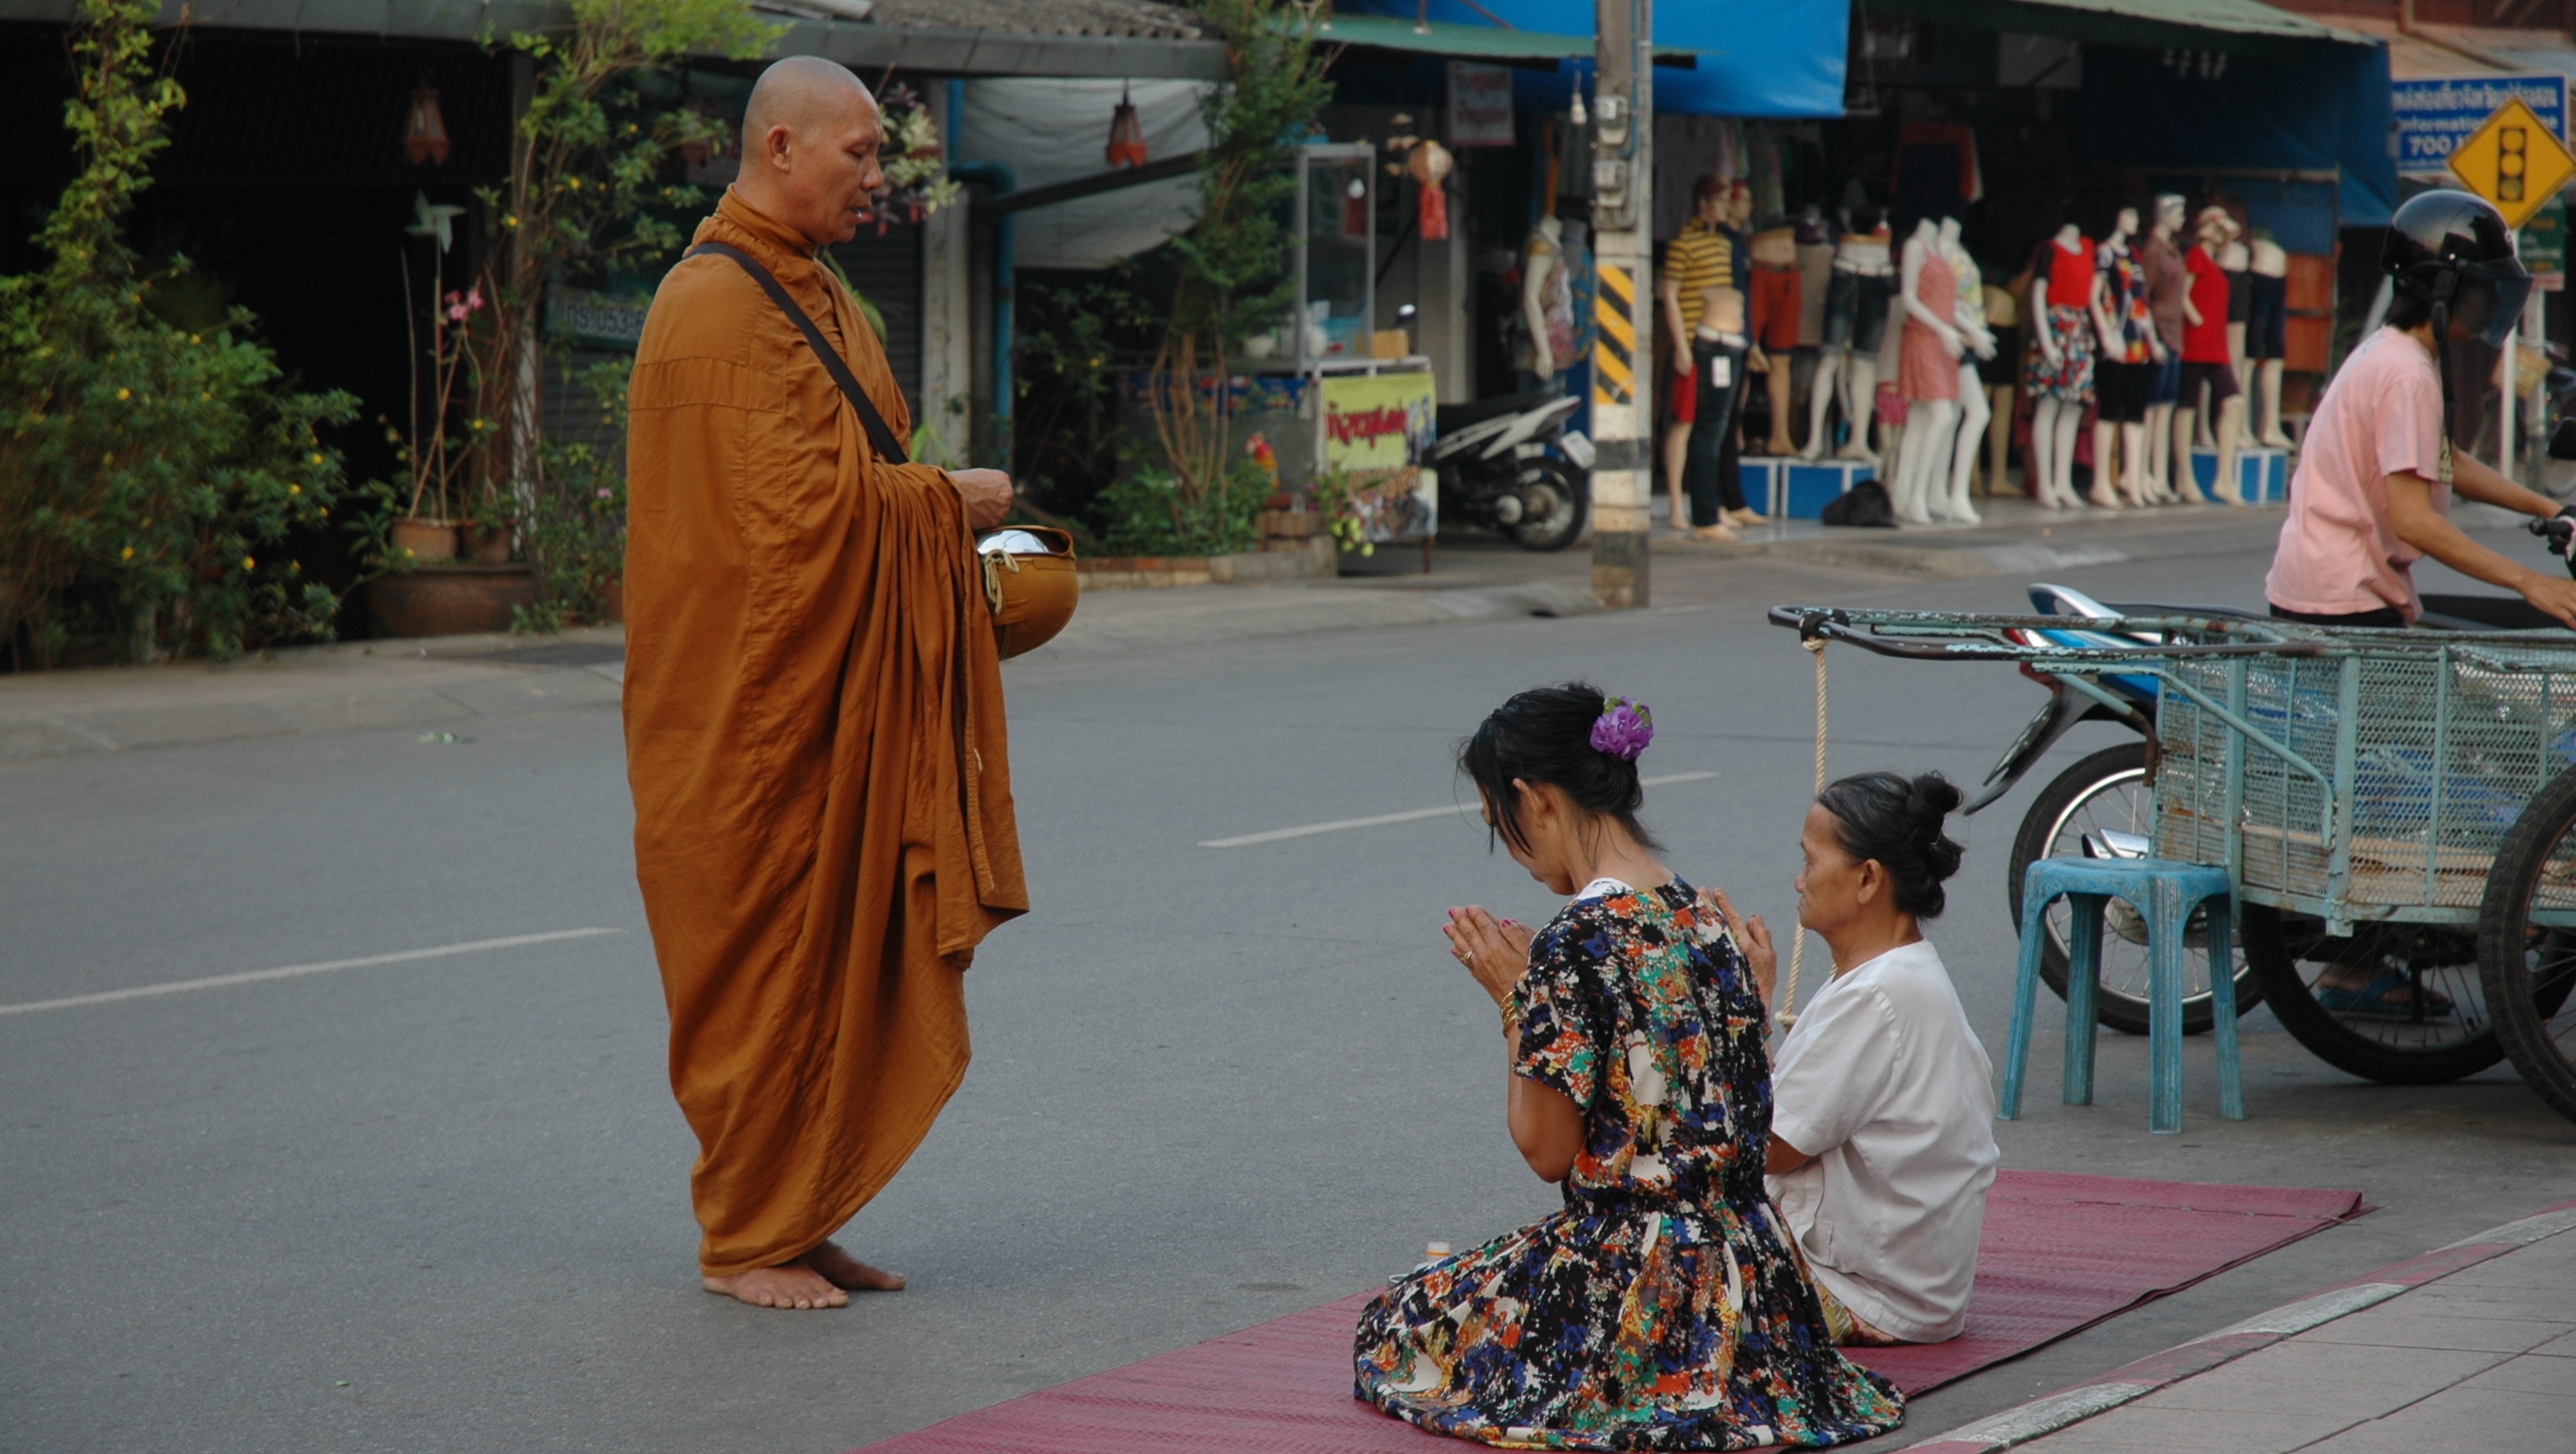 See the locals offer food to the monks.